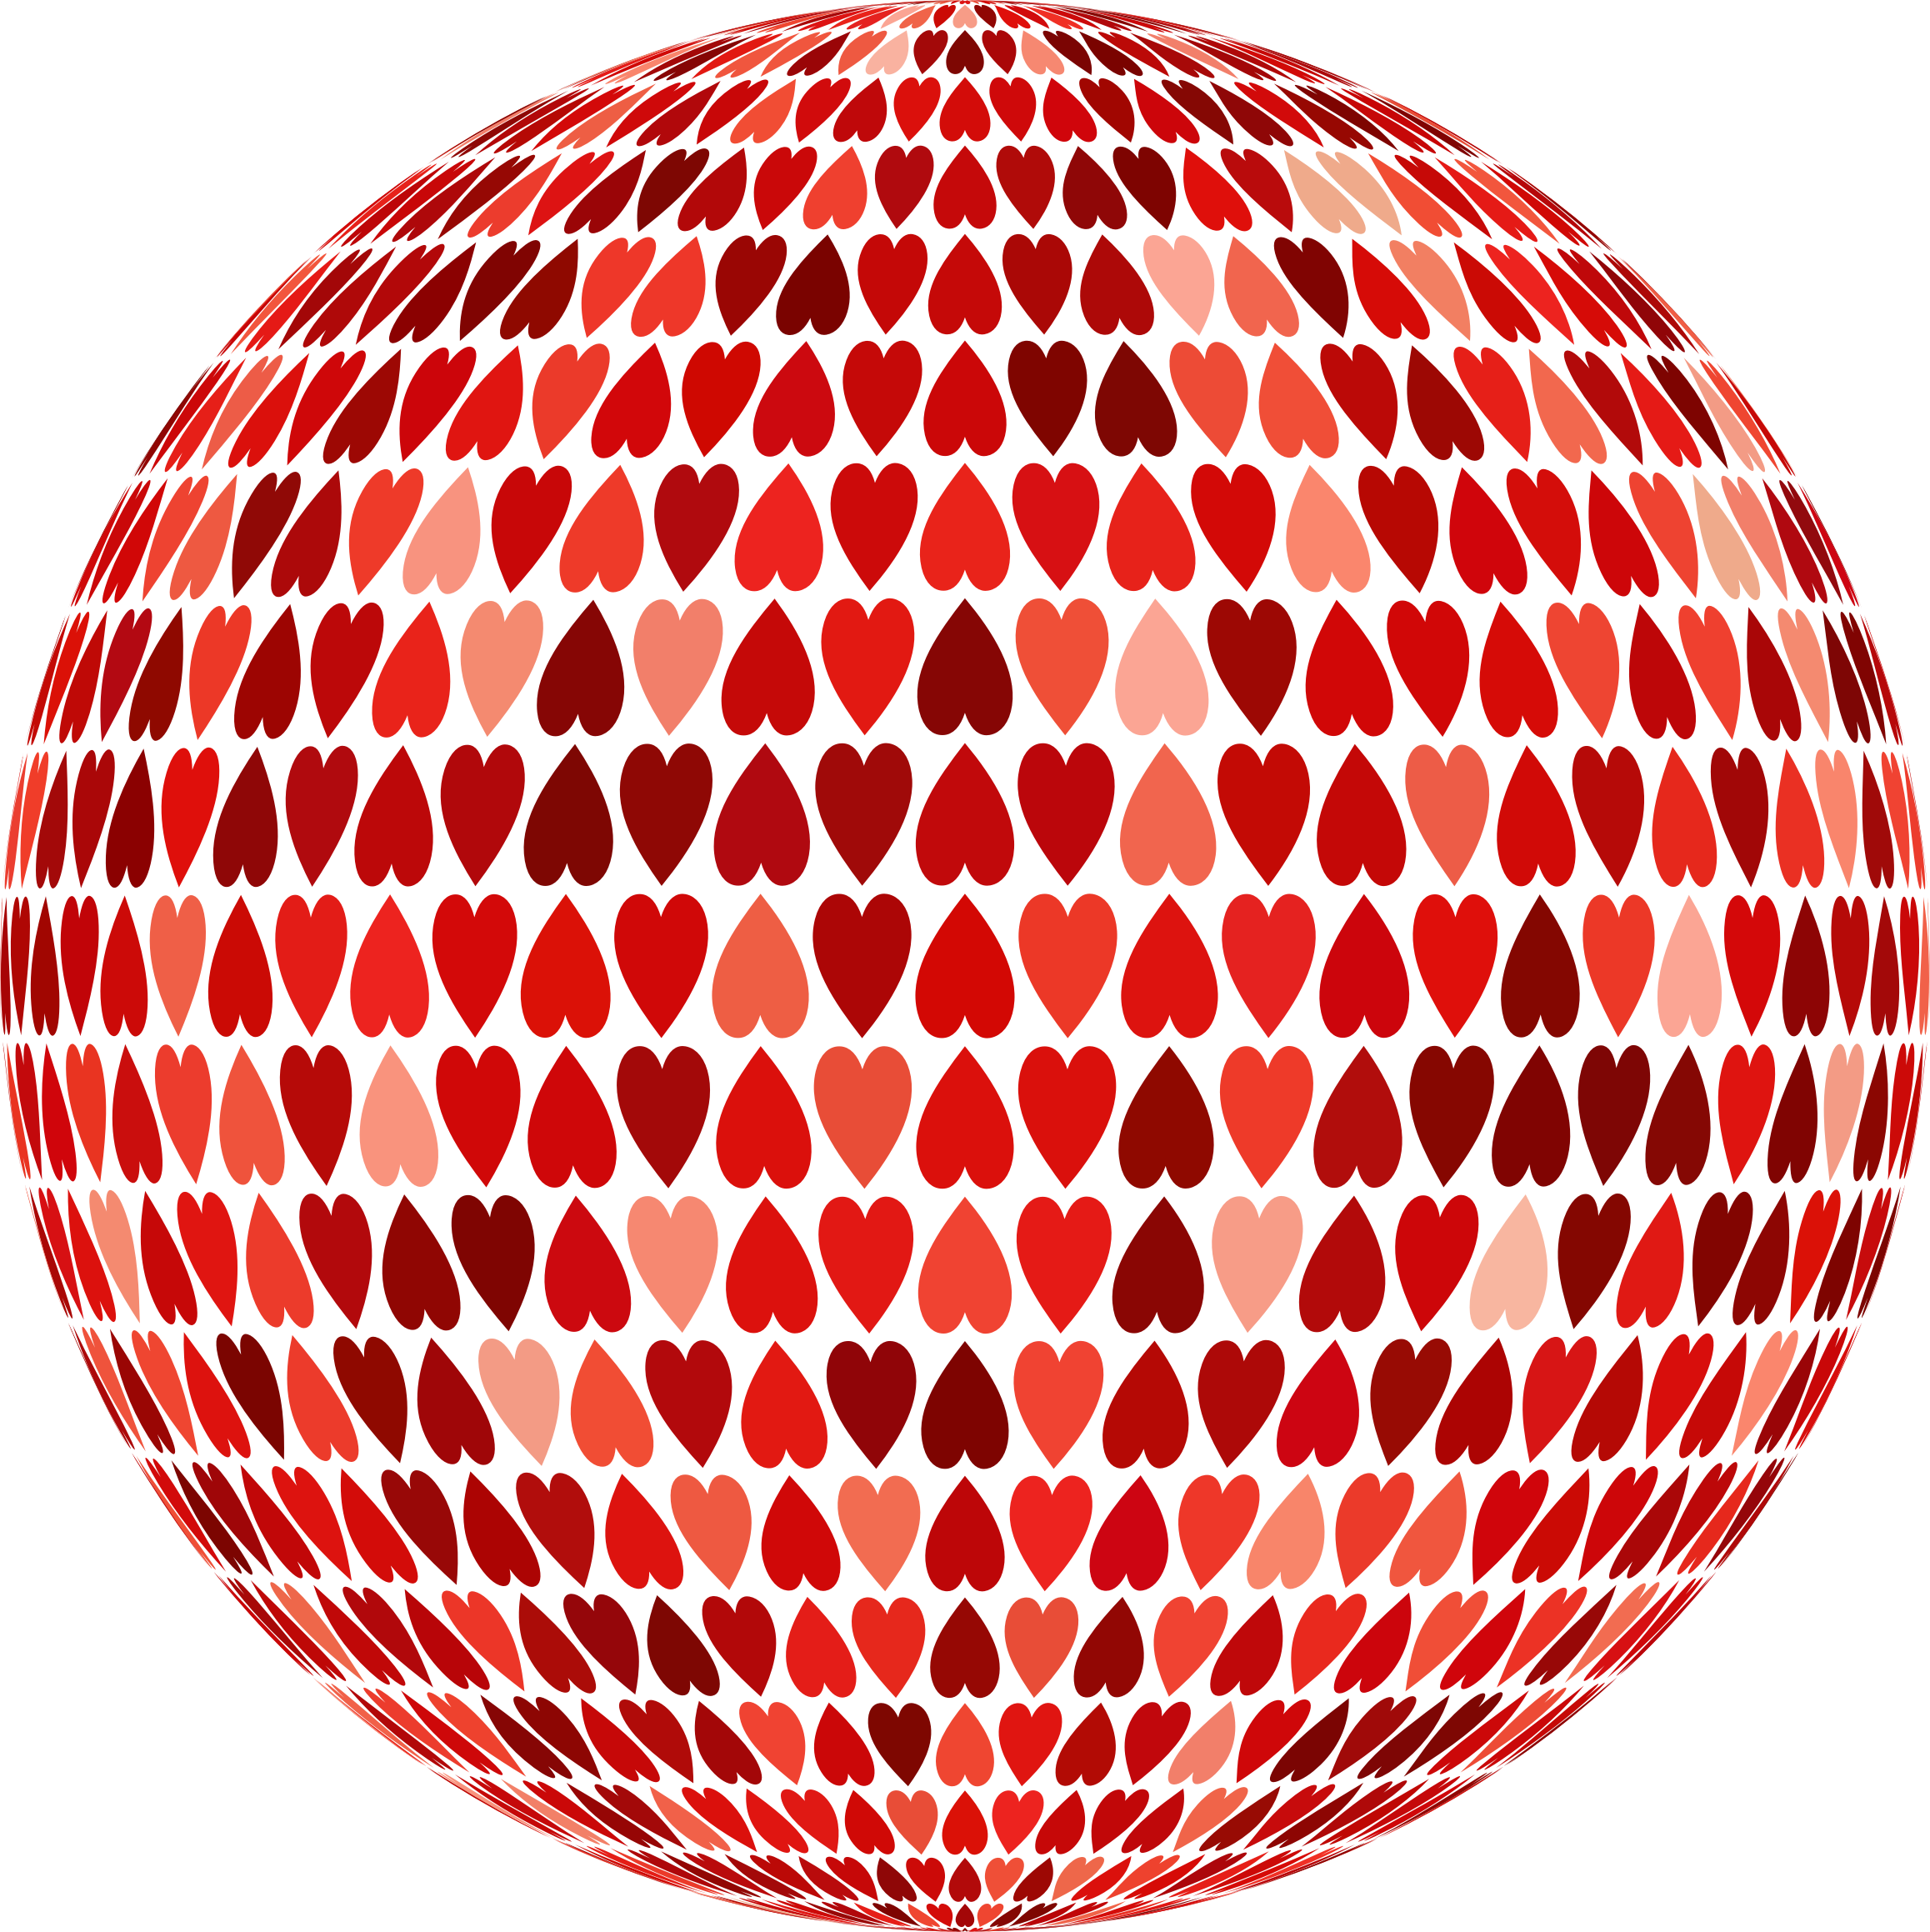 Prismatic Alternating Hearts Sphere 5 No Background by GDJ